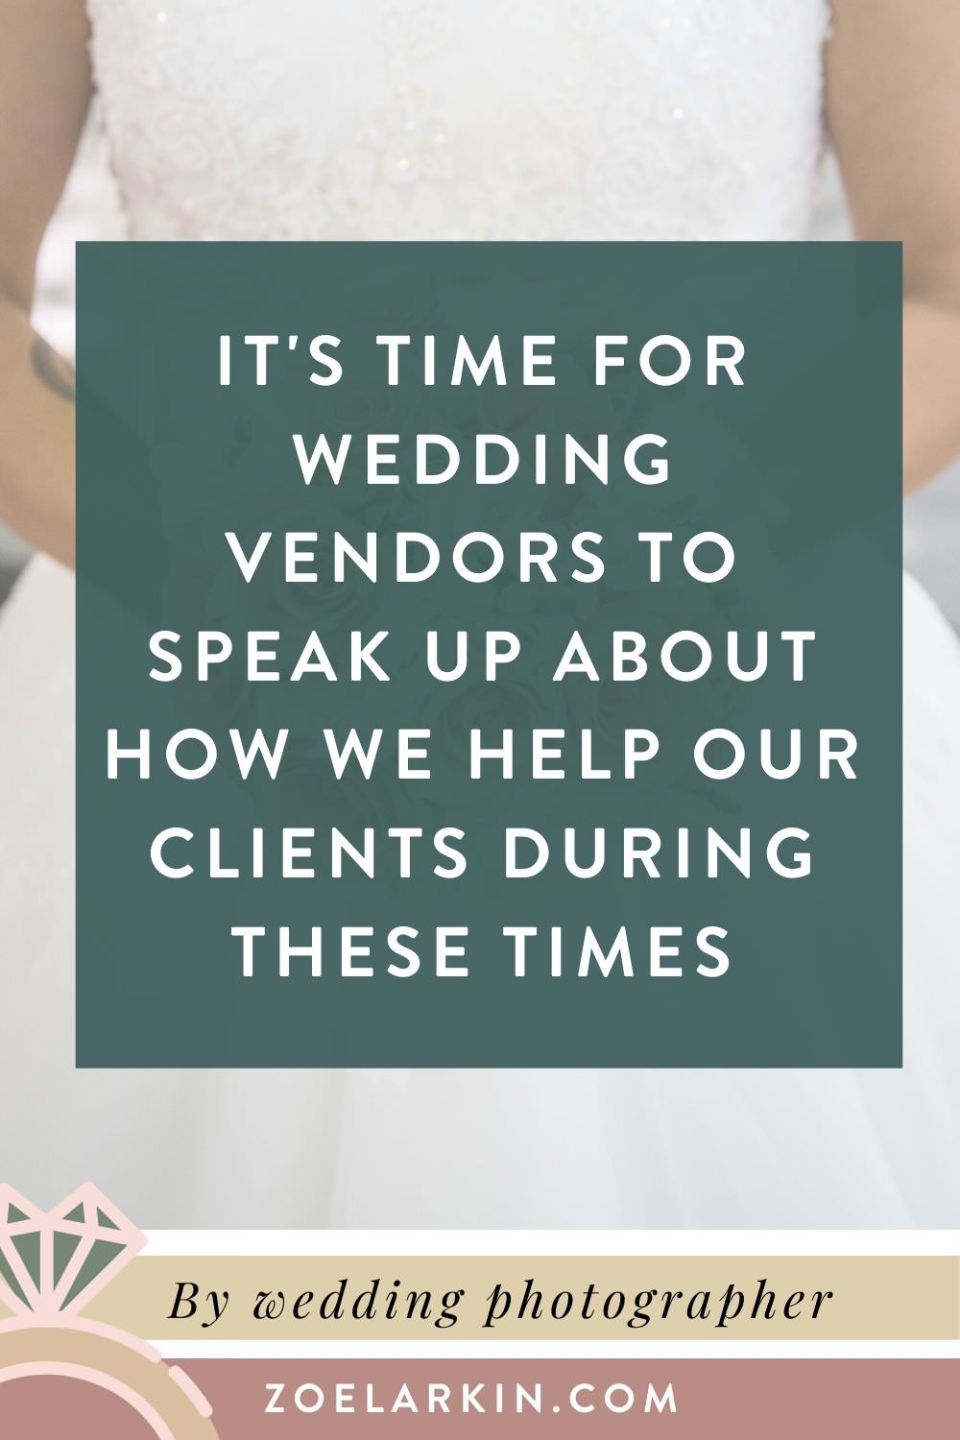 It's time for wedding vendors to speak up about how we support clients through these difficult times. I didn't want to speak out about COVID-19 wedding reschedules, but it's important to be honest, clear and transparent about our new policies. We must protect our businesses AND support our clients. I outline the policies that help my business as I deal with clients' postponing, downsizing and even canceling their weddings (yikes!) #weddings #weddingvendors | Zoe Larkin Photography